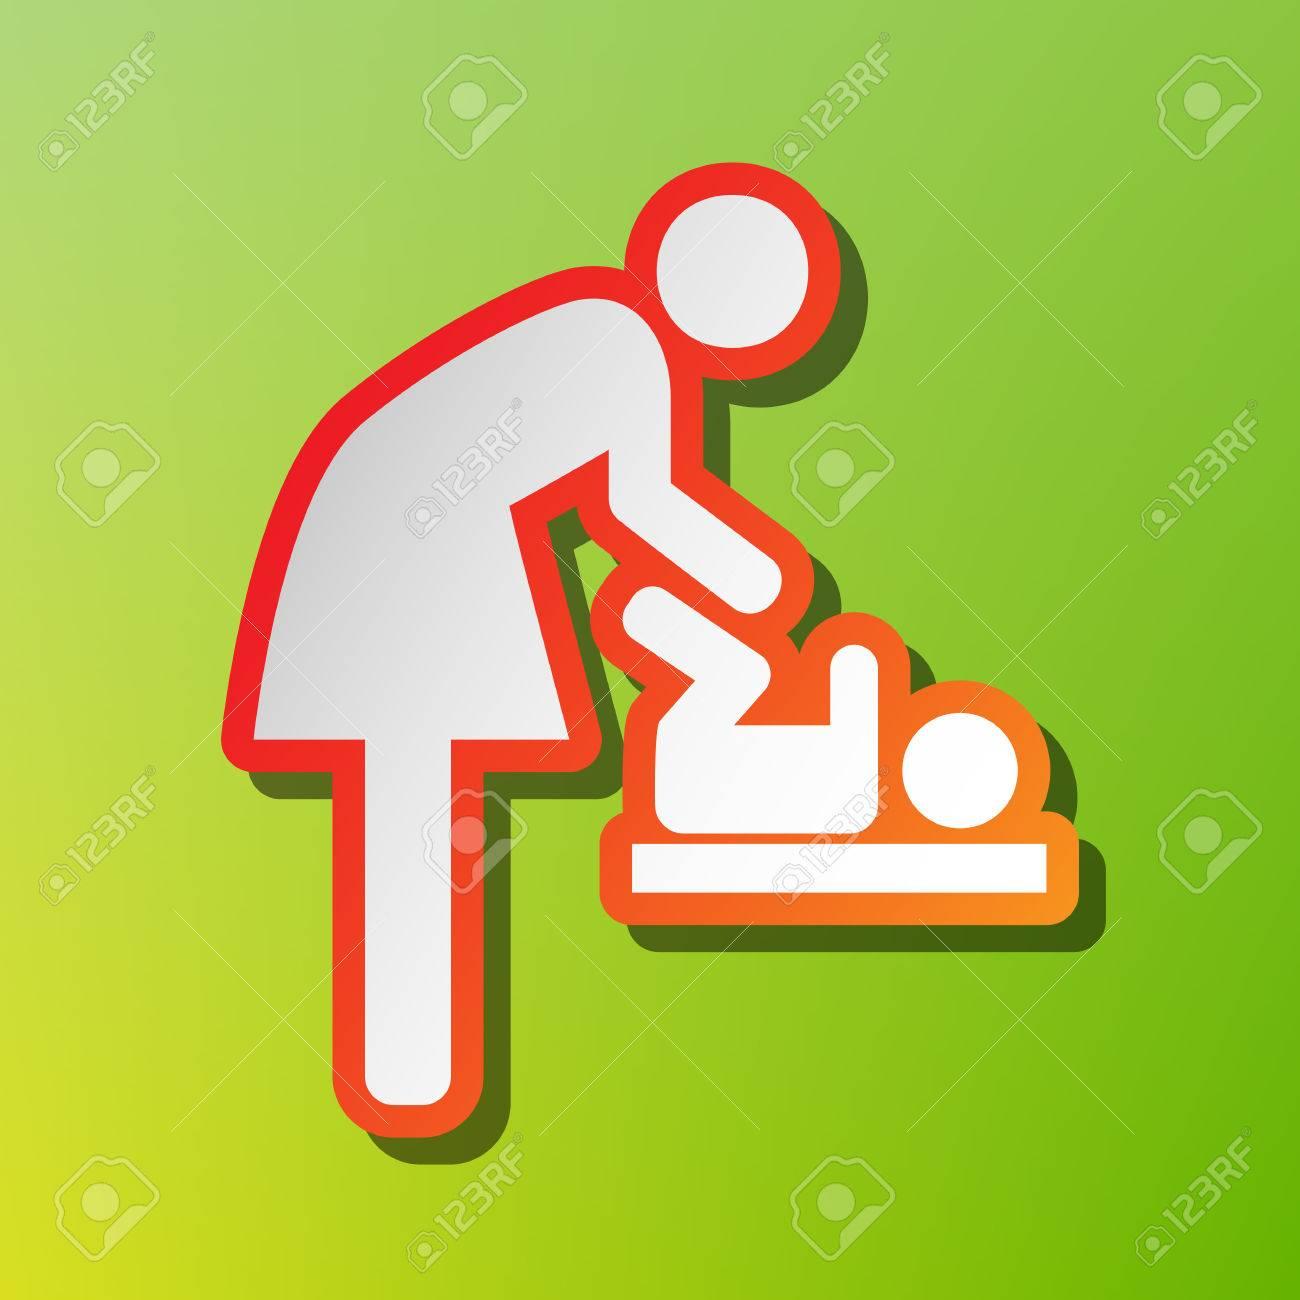 Symbol for women and baby baby changing contrast icon with symbol for women and baby baby changing contrast icon with reddish stroke on green biocorpaavc Gallery